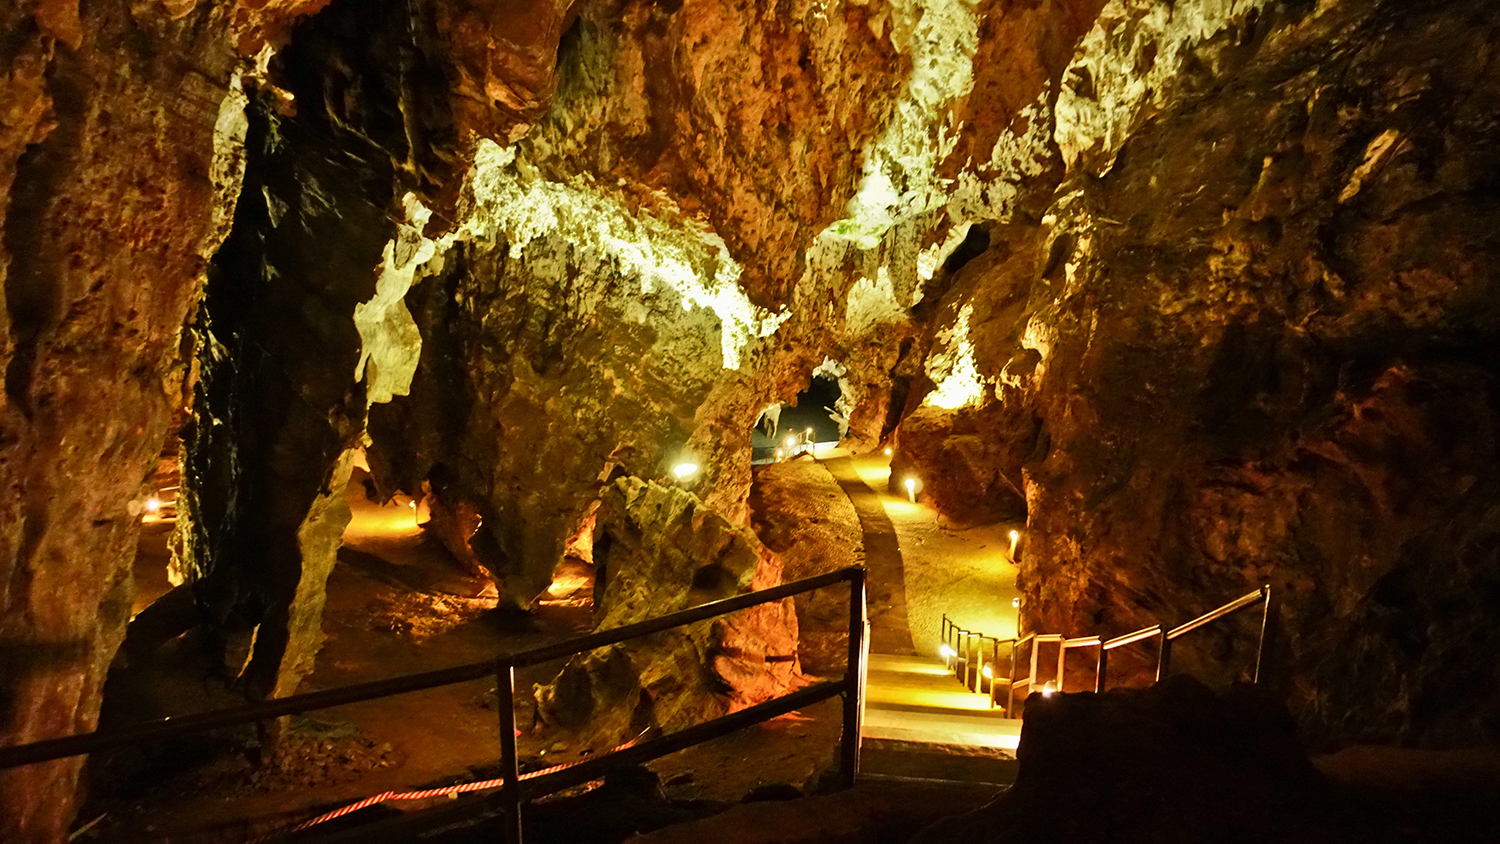 Sterkfontein Caves, South Africa